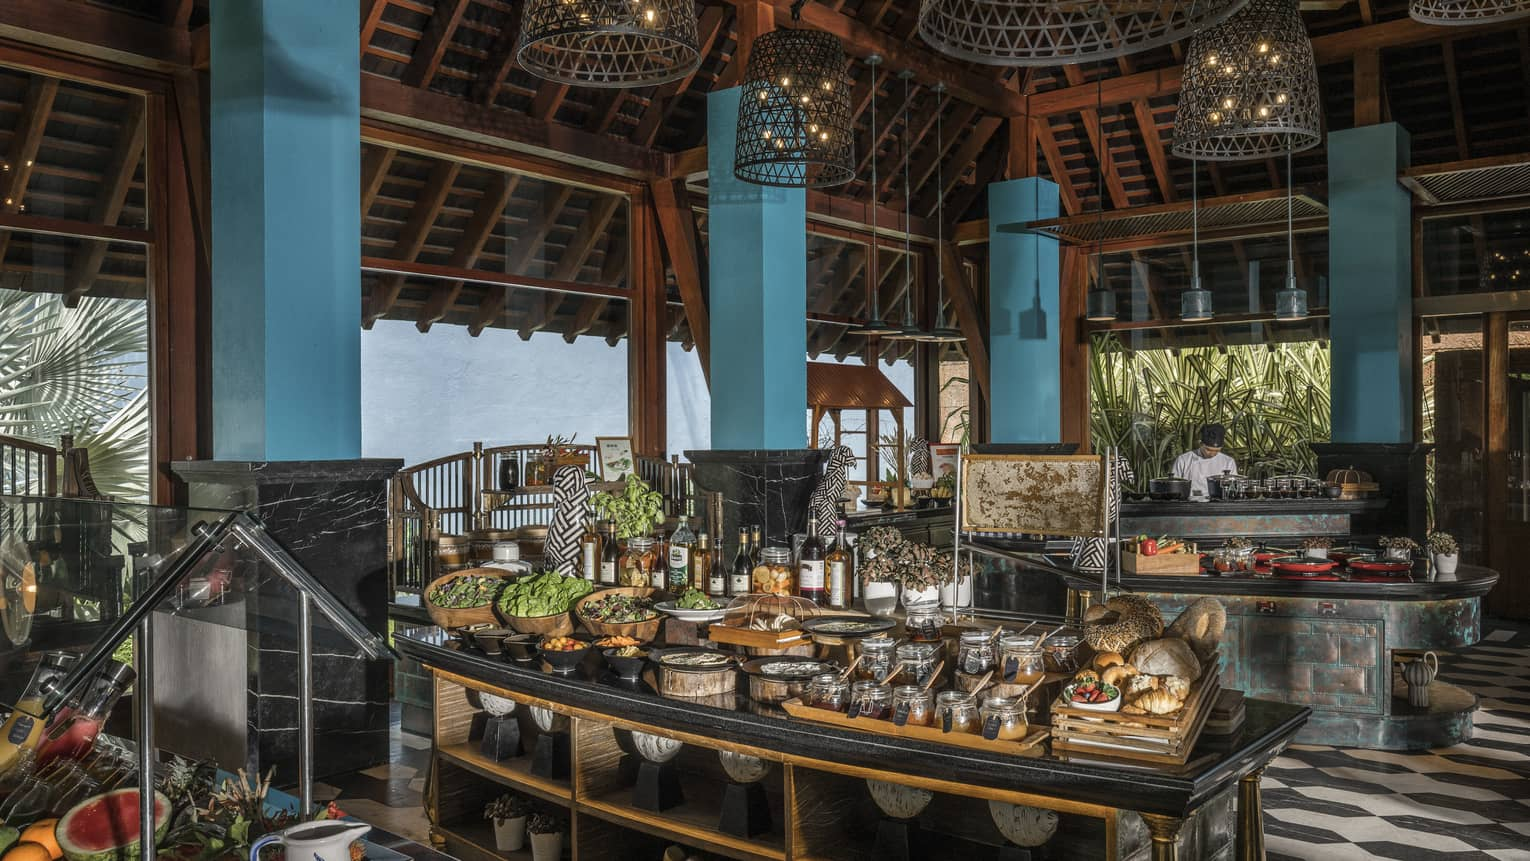 Lower Serai Restaurant Buffet with a chef cooking and fresh fruit